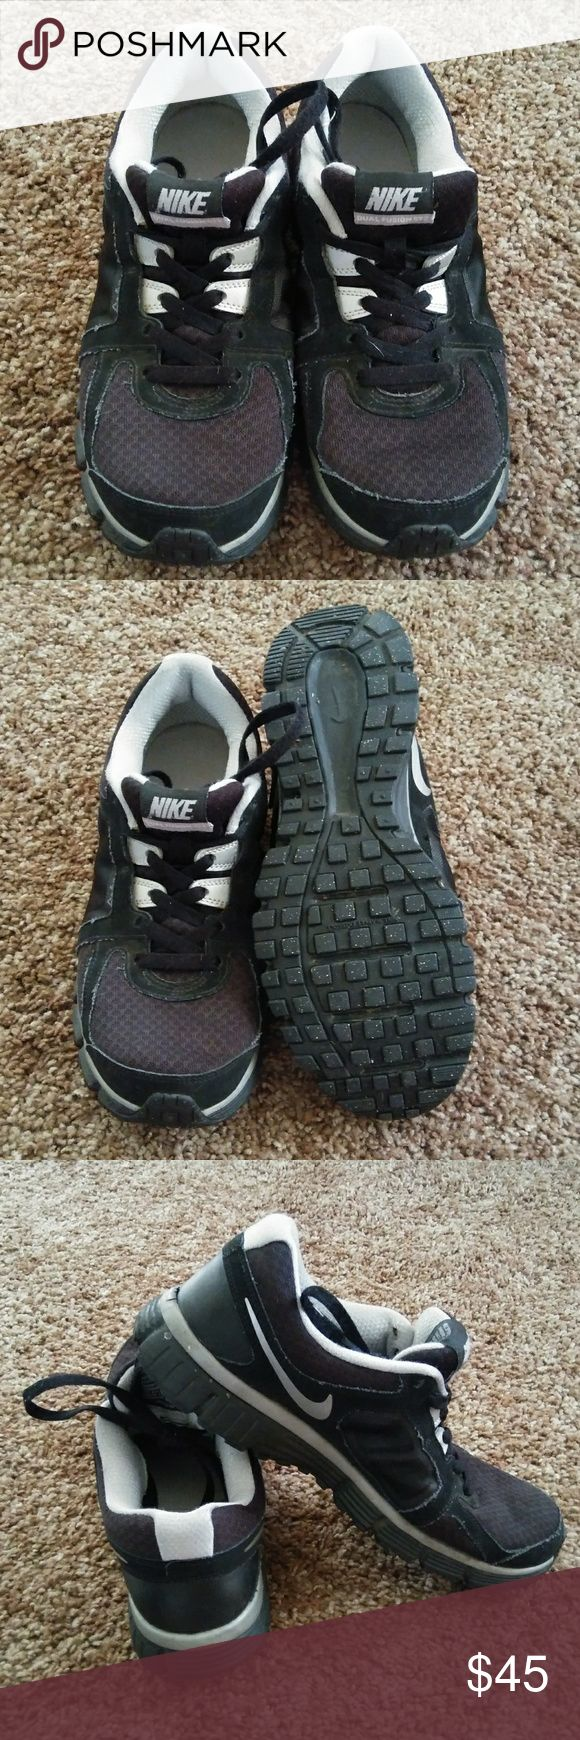 Nike Dual Fusion ST2 Running Shoes Good used condition Nike Dual Fusion ST running shoes Size 9 men's Black & grey  **Bundle to save on shipping   **Cat friendly, smoke free home Nike Shoes Athletic Shoes